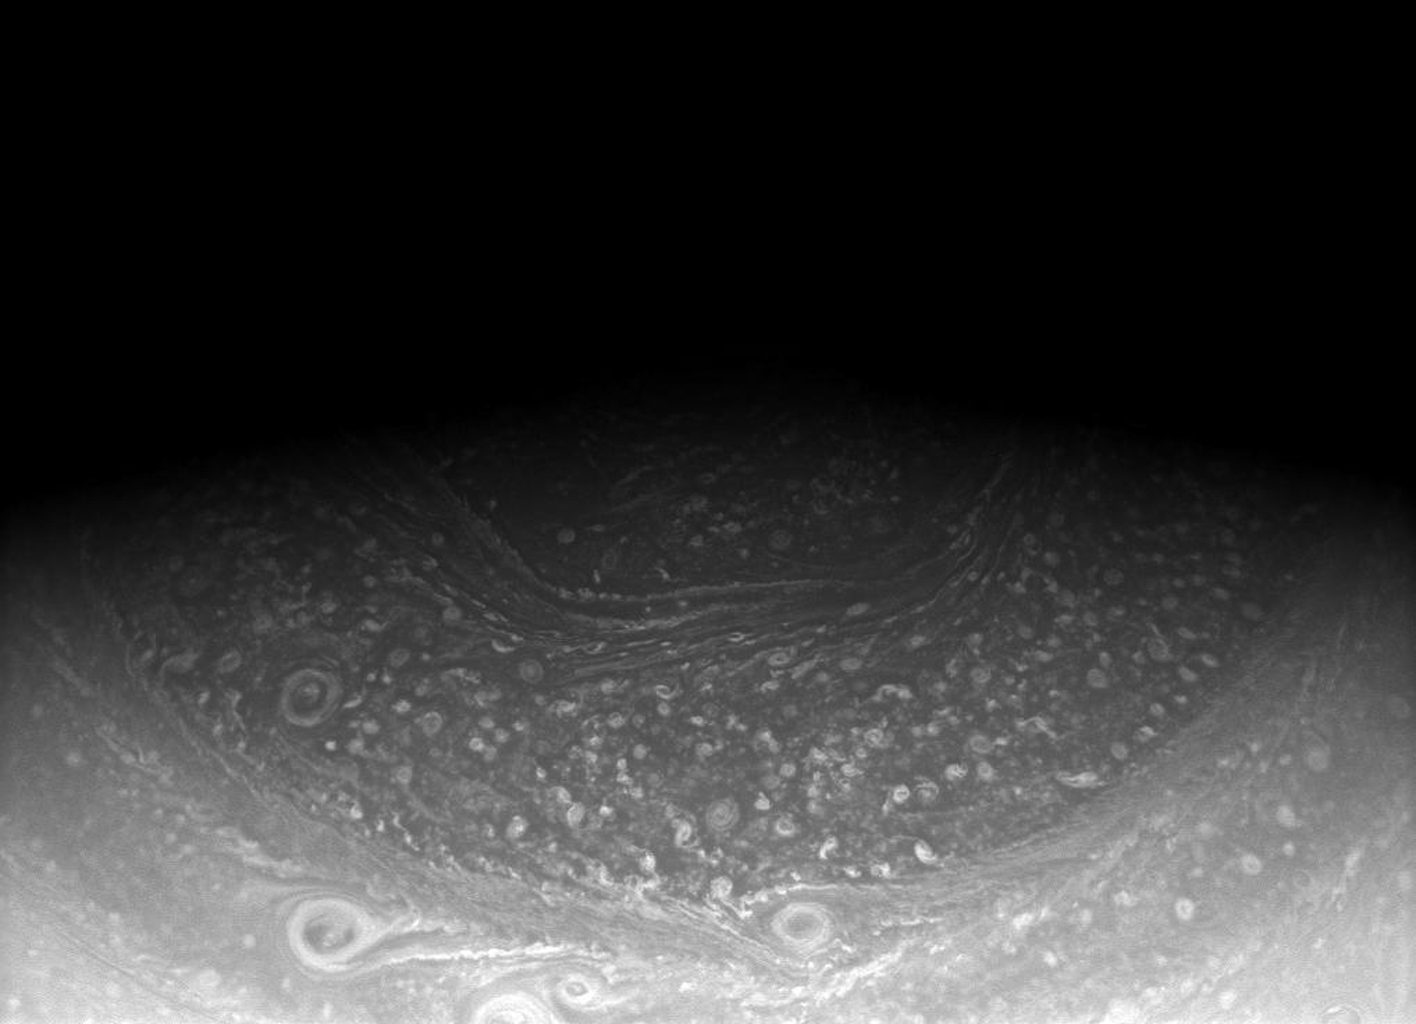 Saturn's north pole hexagon, seen here in an image from NASA's Cassini spacecraft, has been around for awhile. It was seen in Voyager images in the early 1980s, in ground-based telescopic images in the 1990s, and now with Cassini.